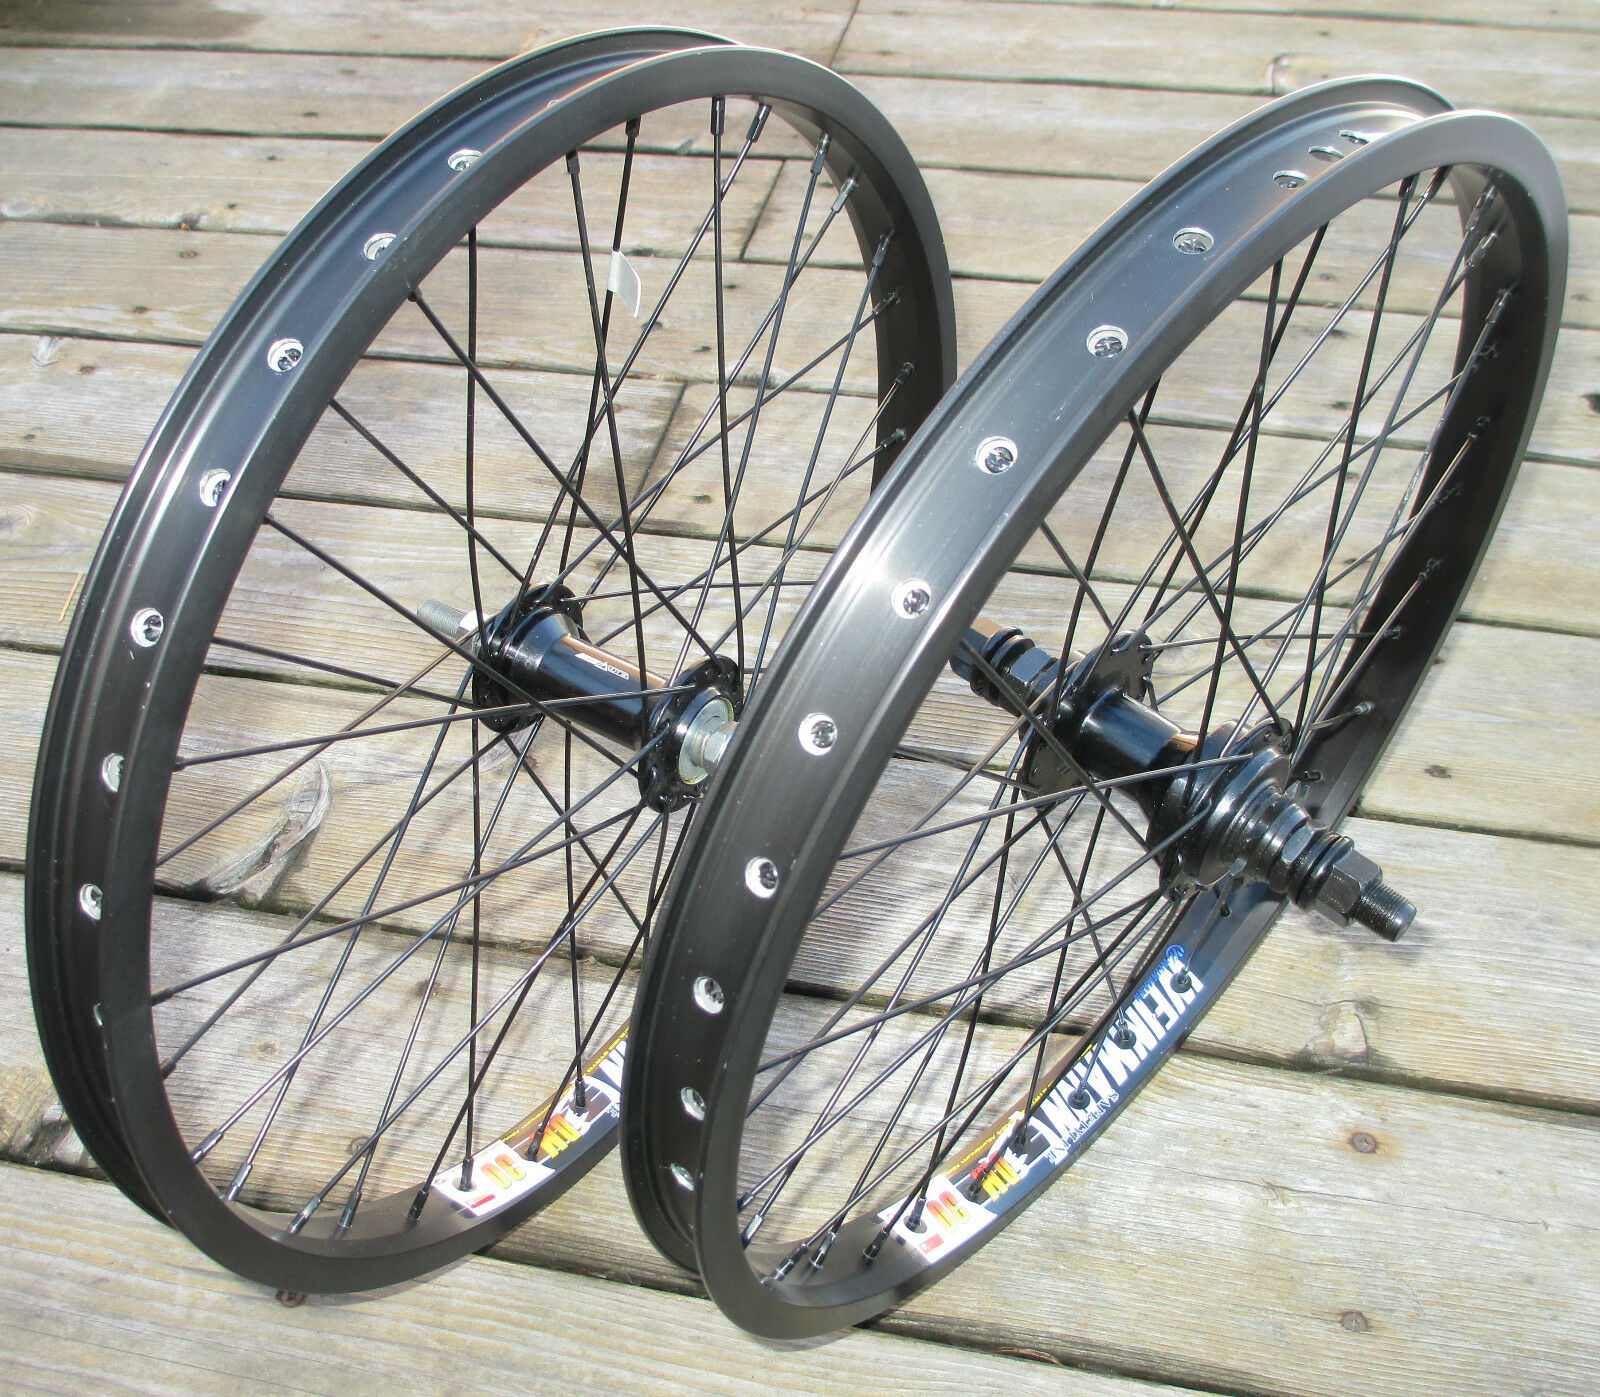 Wheel Set 20  BMX Park Front 3 8 & 9T 14mm 3 8 Slotted Rear Double Walled Rims